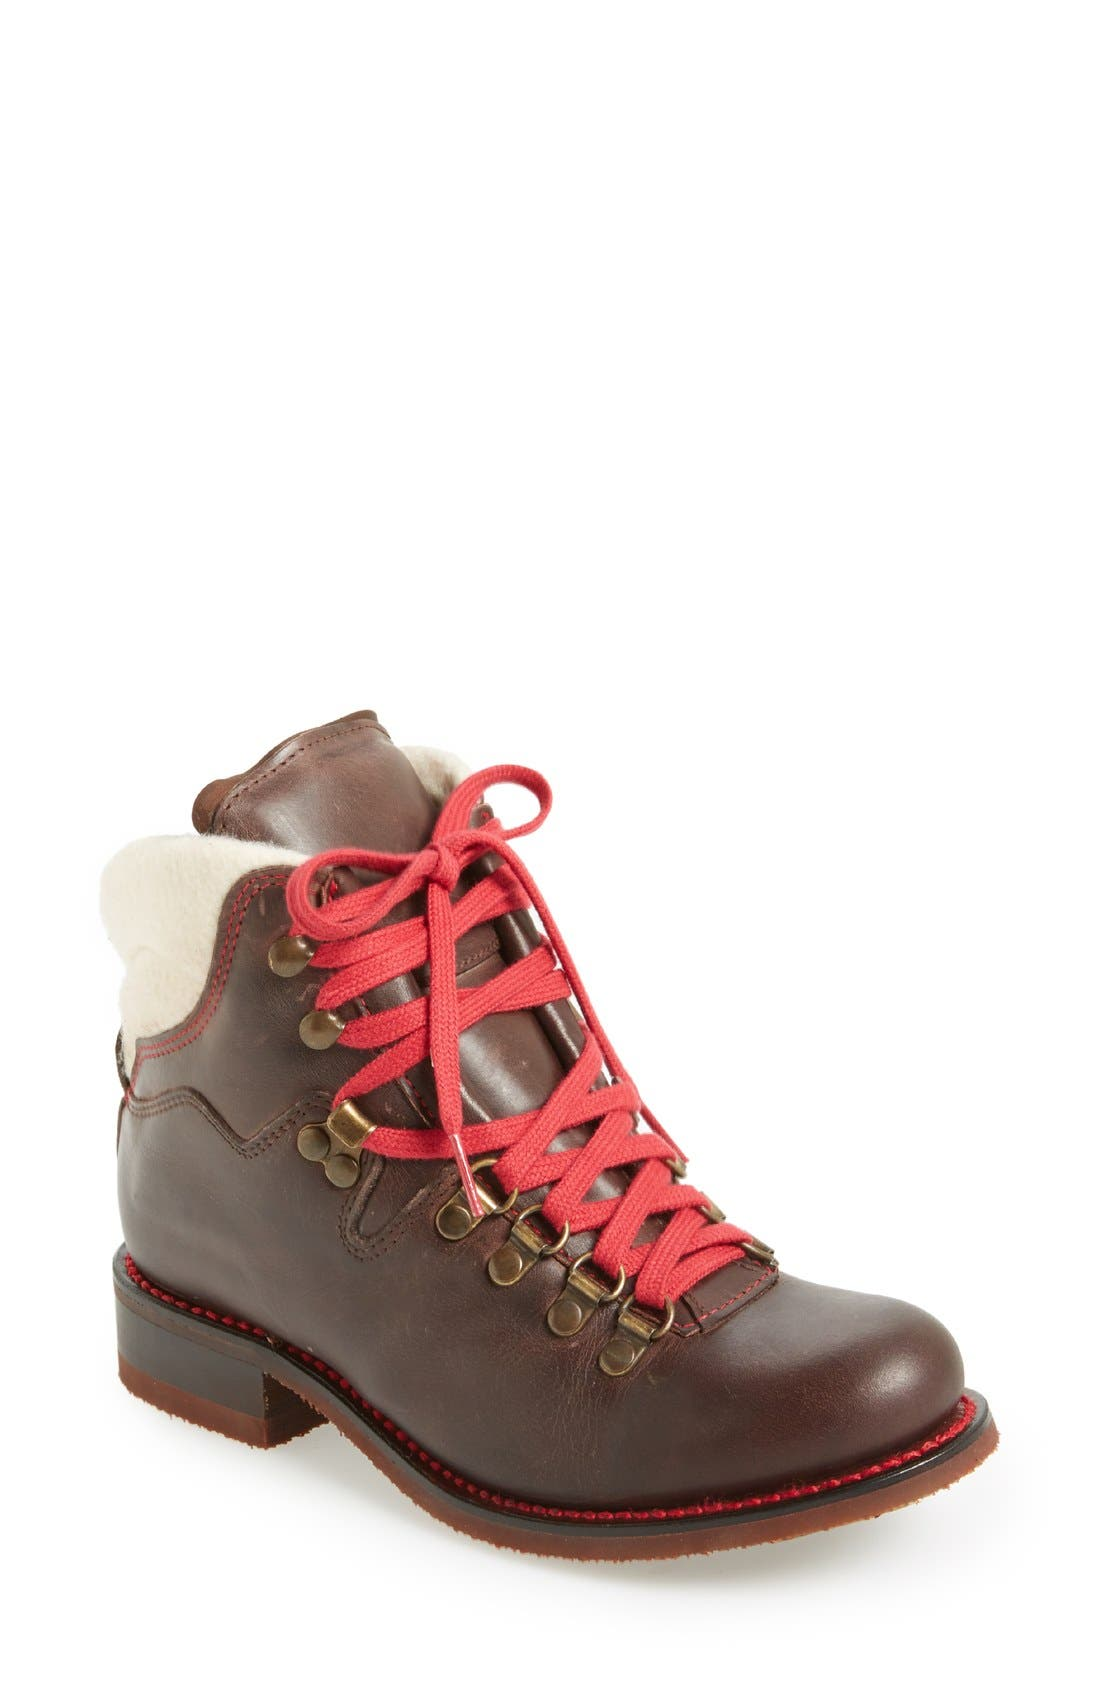 Alternate Image 1 Selected - Sendra 'Vail' Hiking Bootie (Women)